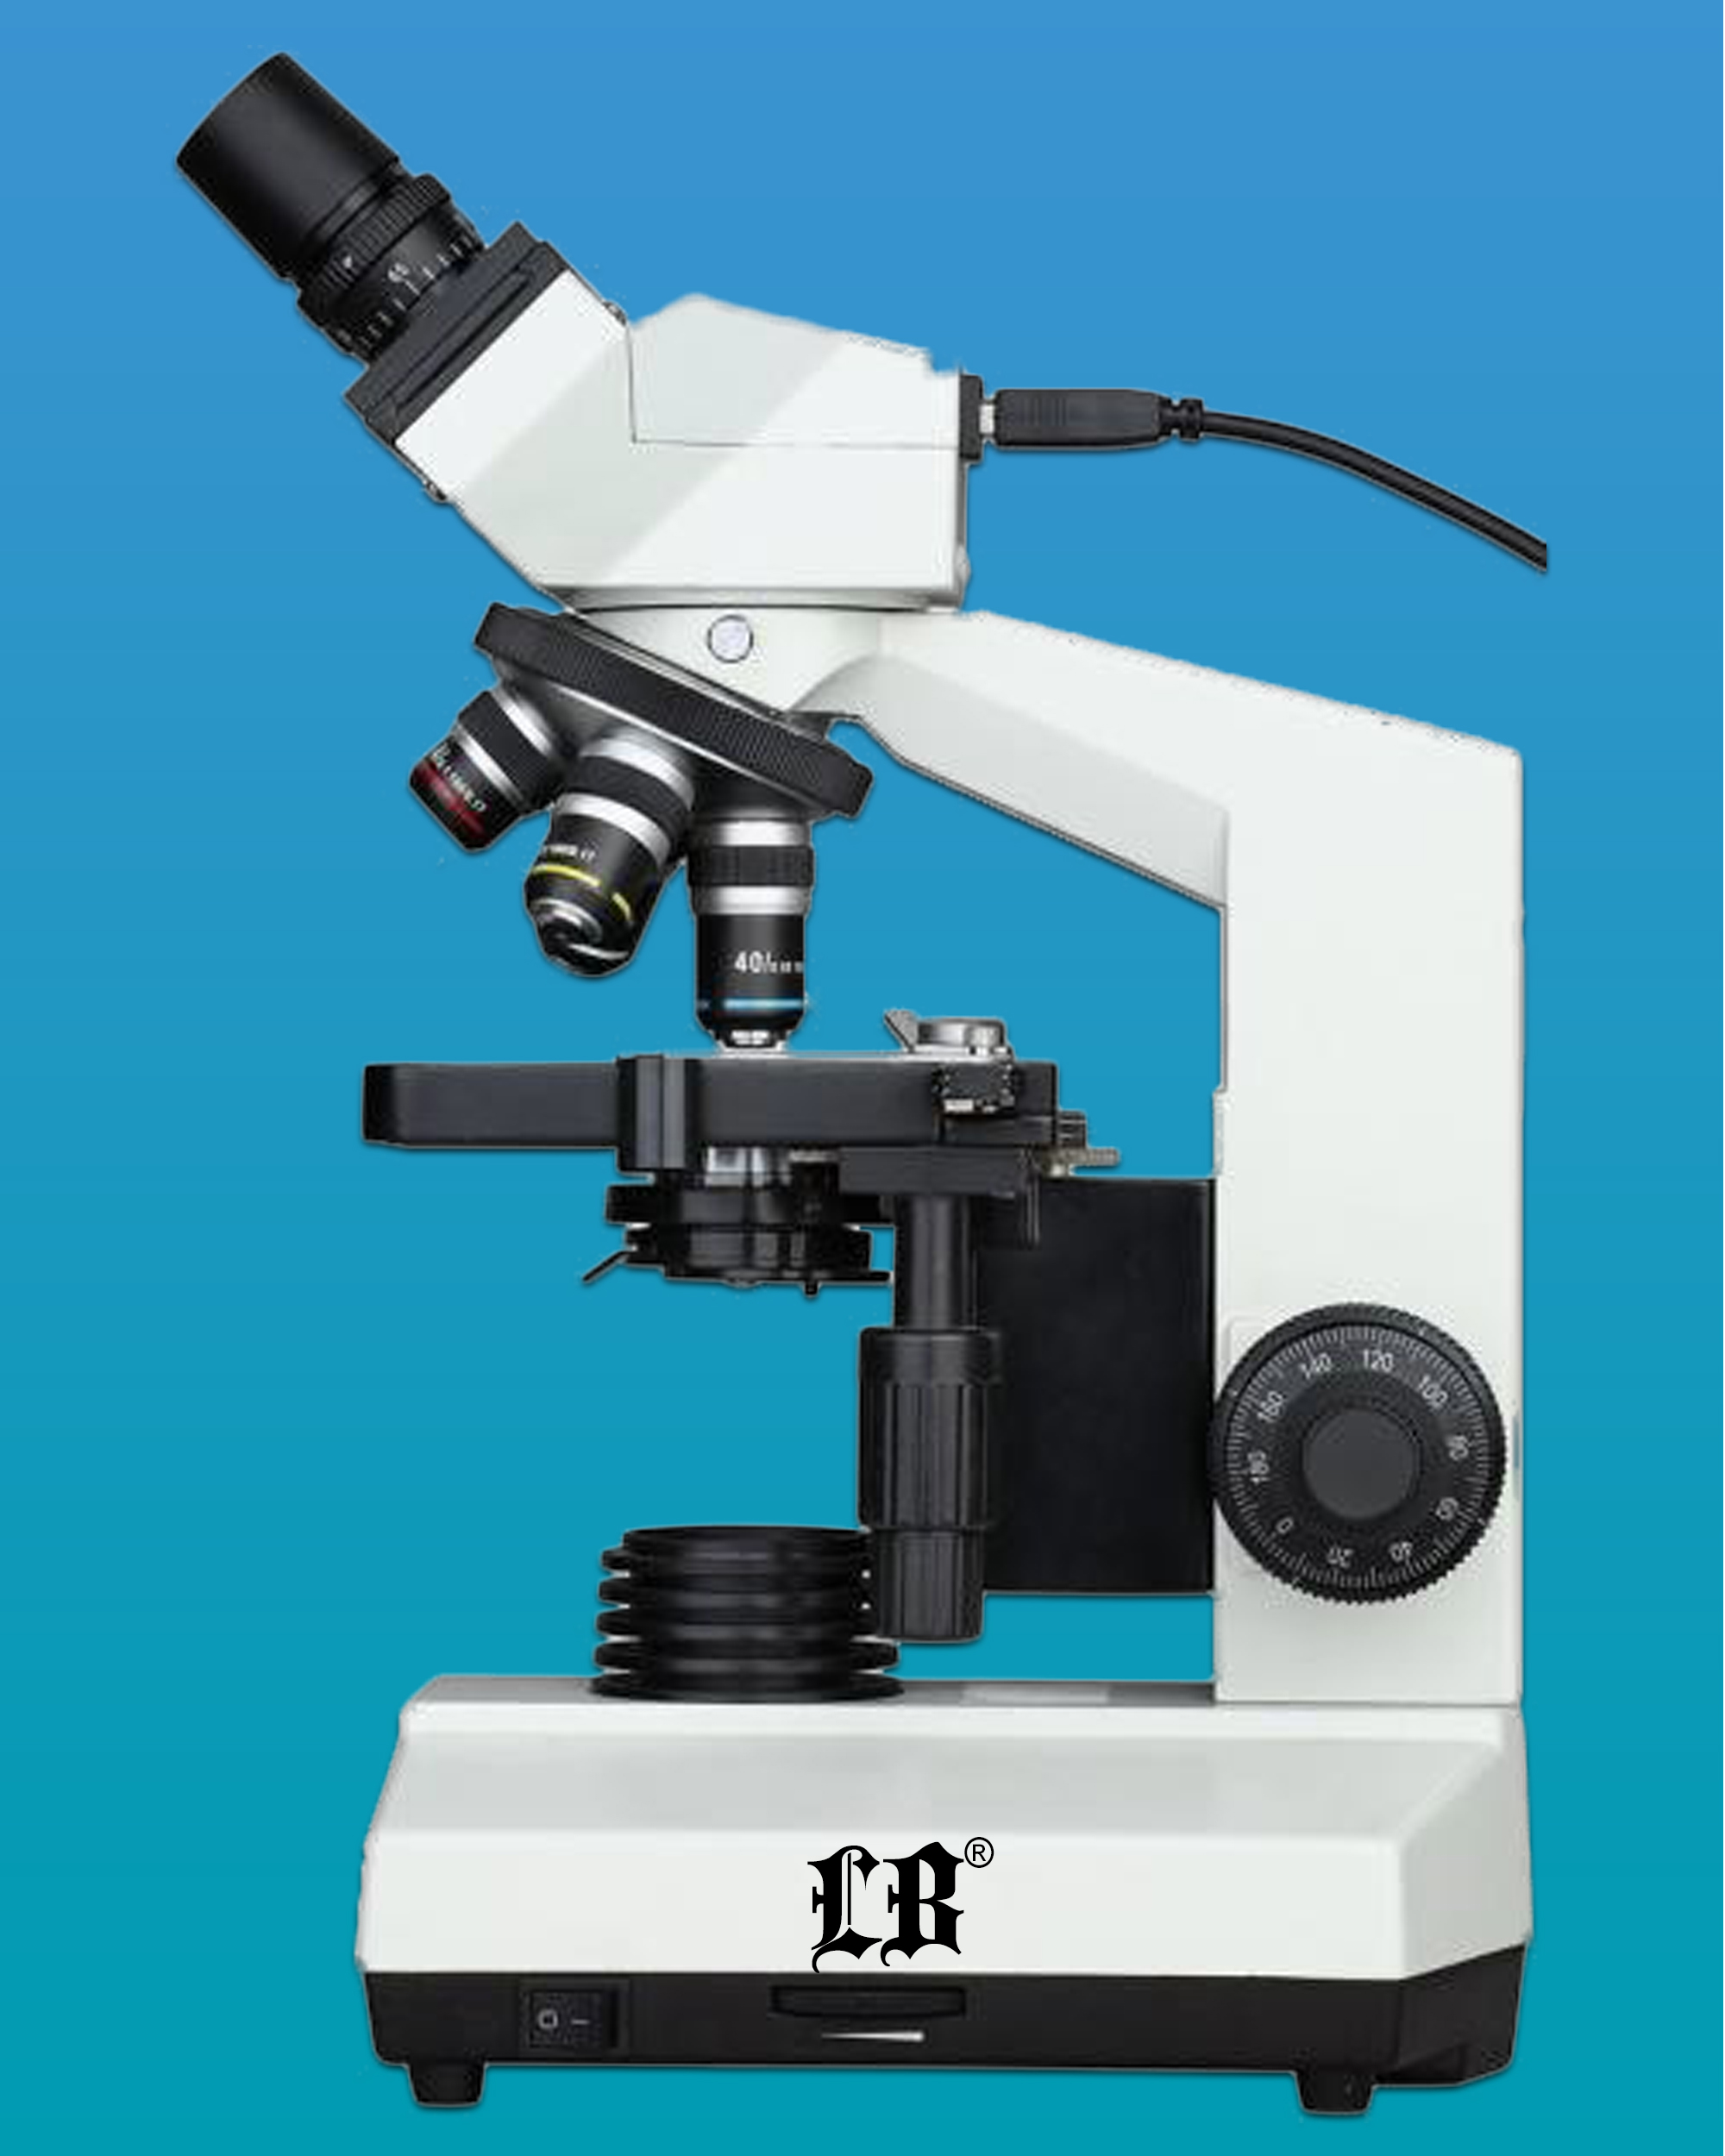 [LB-230] Binocular Biological Digital Microscope w/ LED Illumination & 1.3 MP Camera